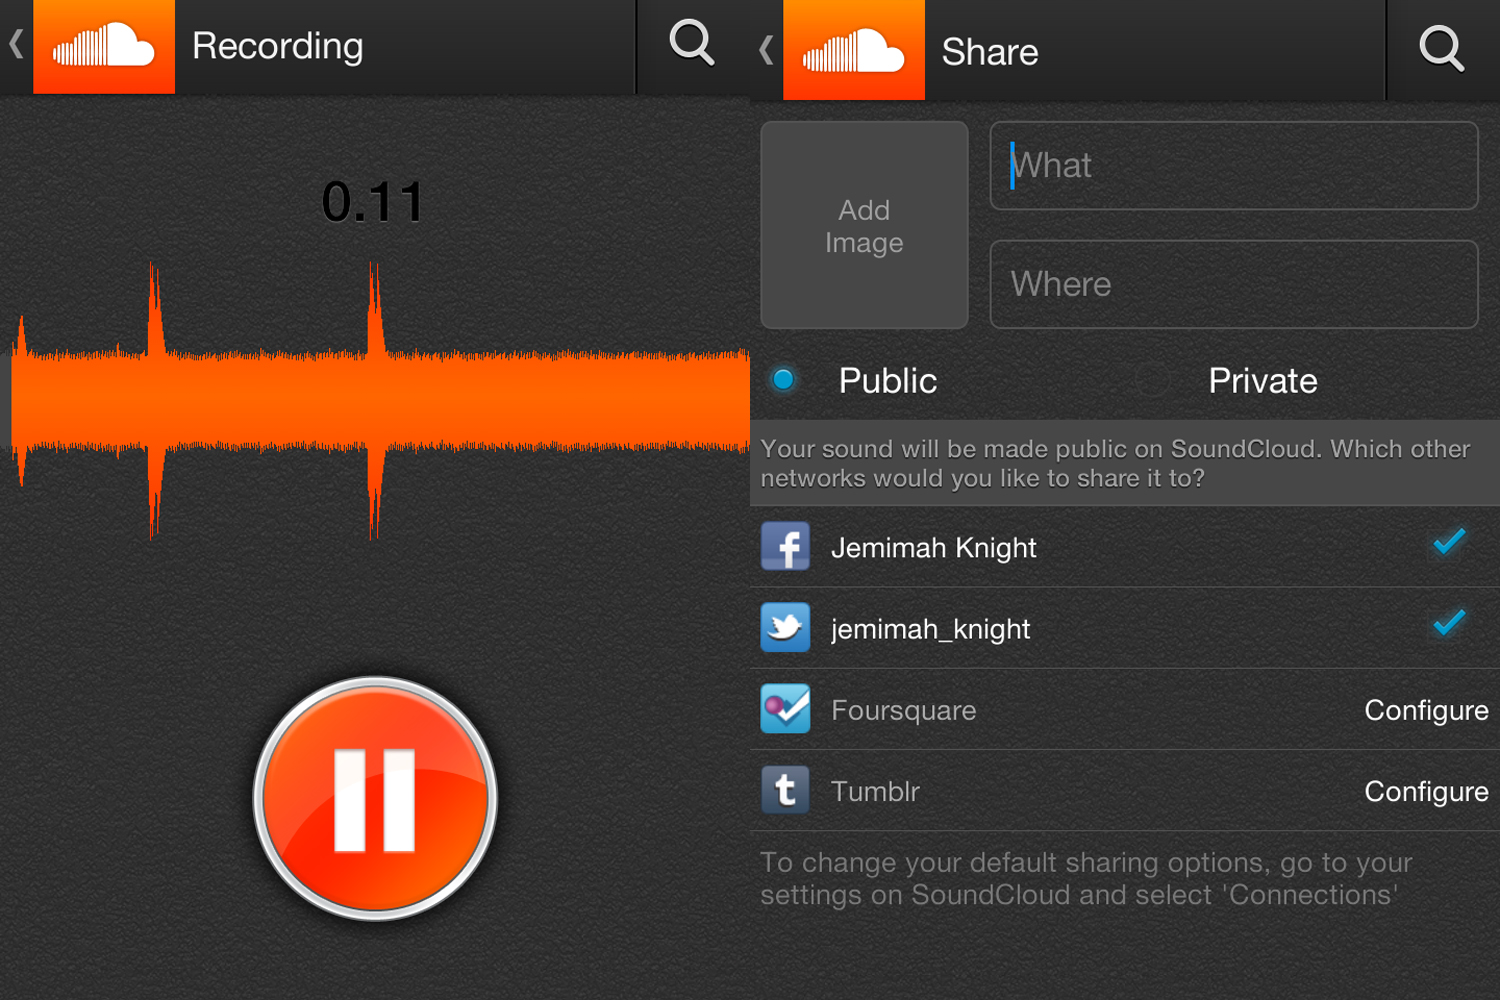 soundcloud screens Just got a new Android device? Download these apps first